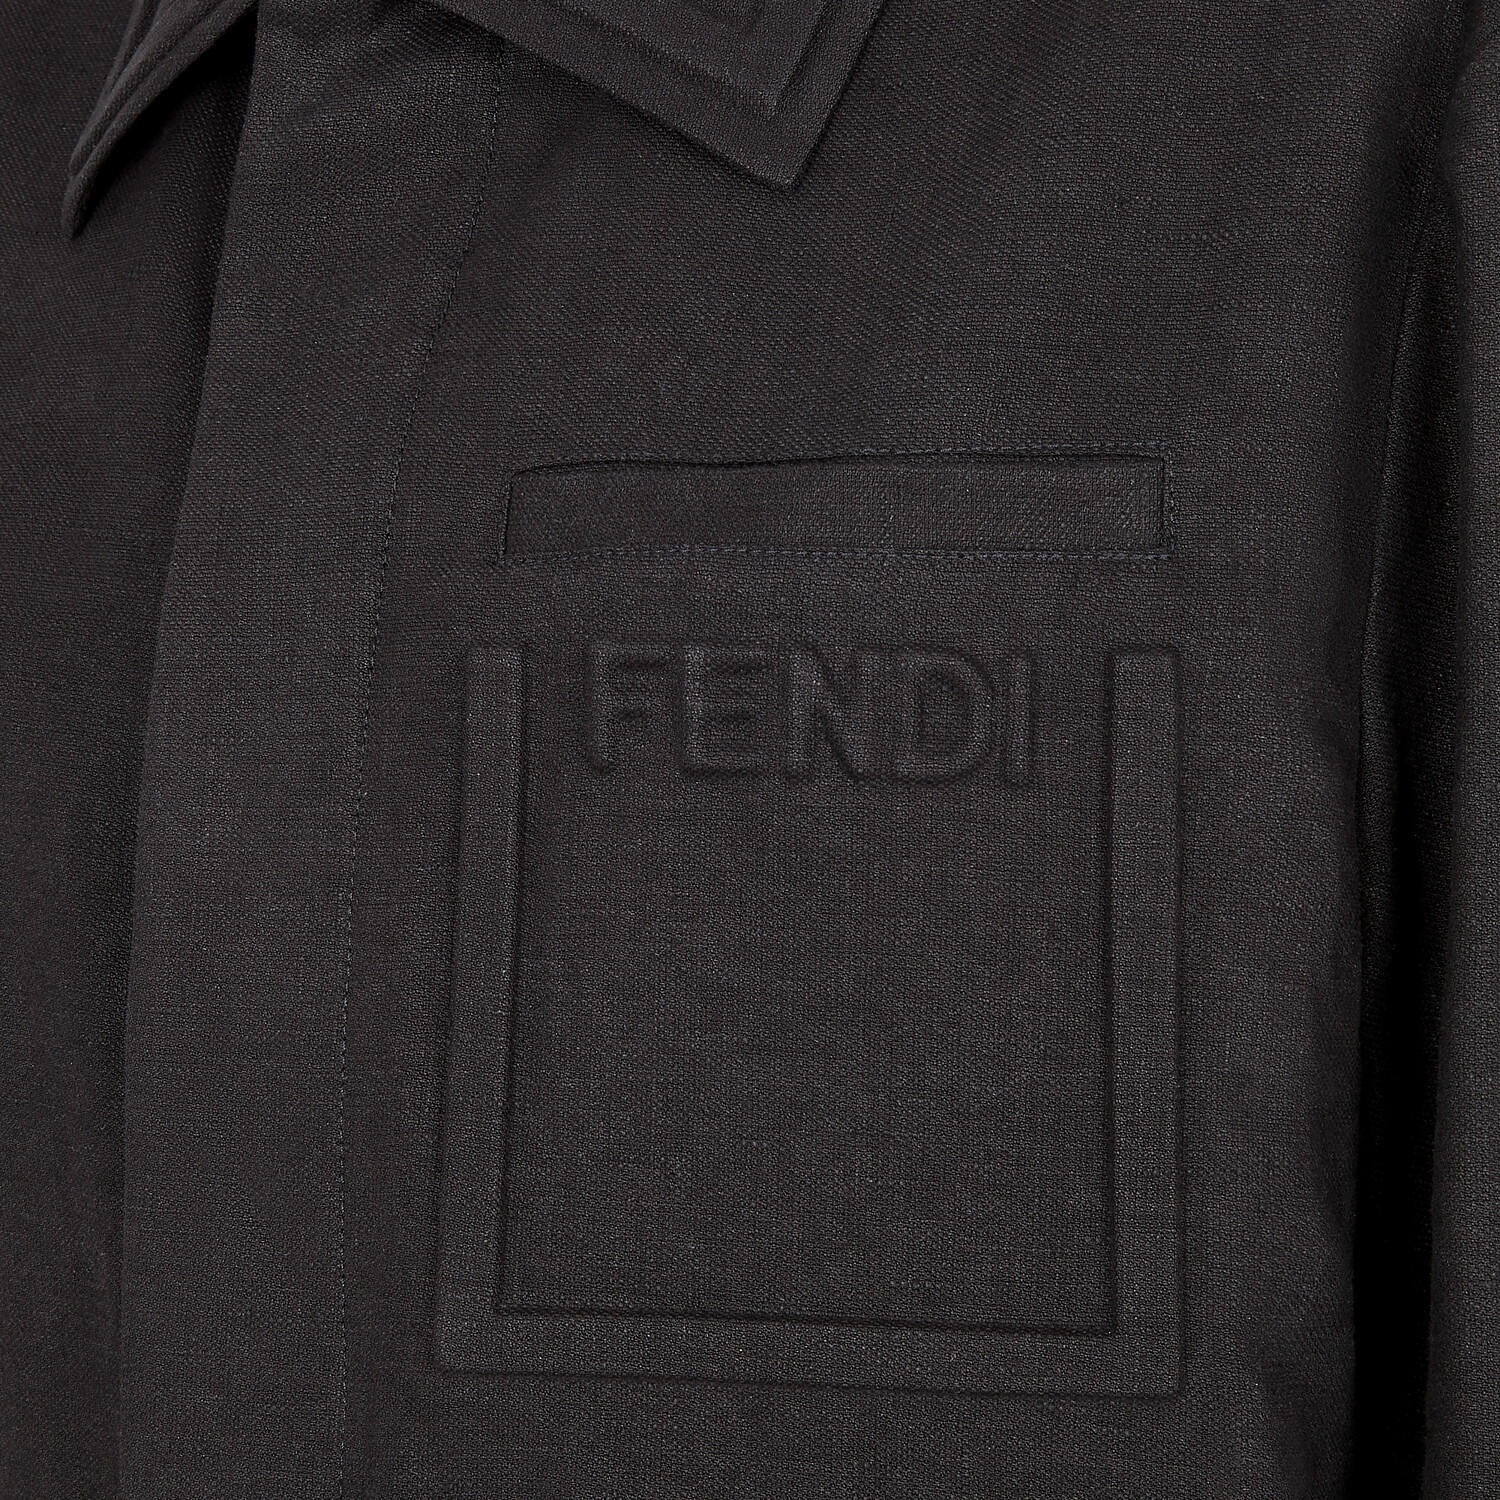 FENDI CAR COAT - Black linen jacket - view 3 detail